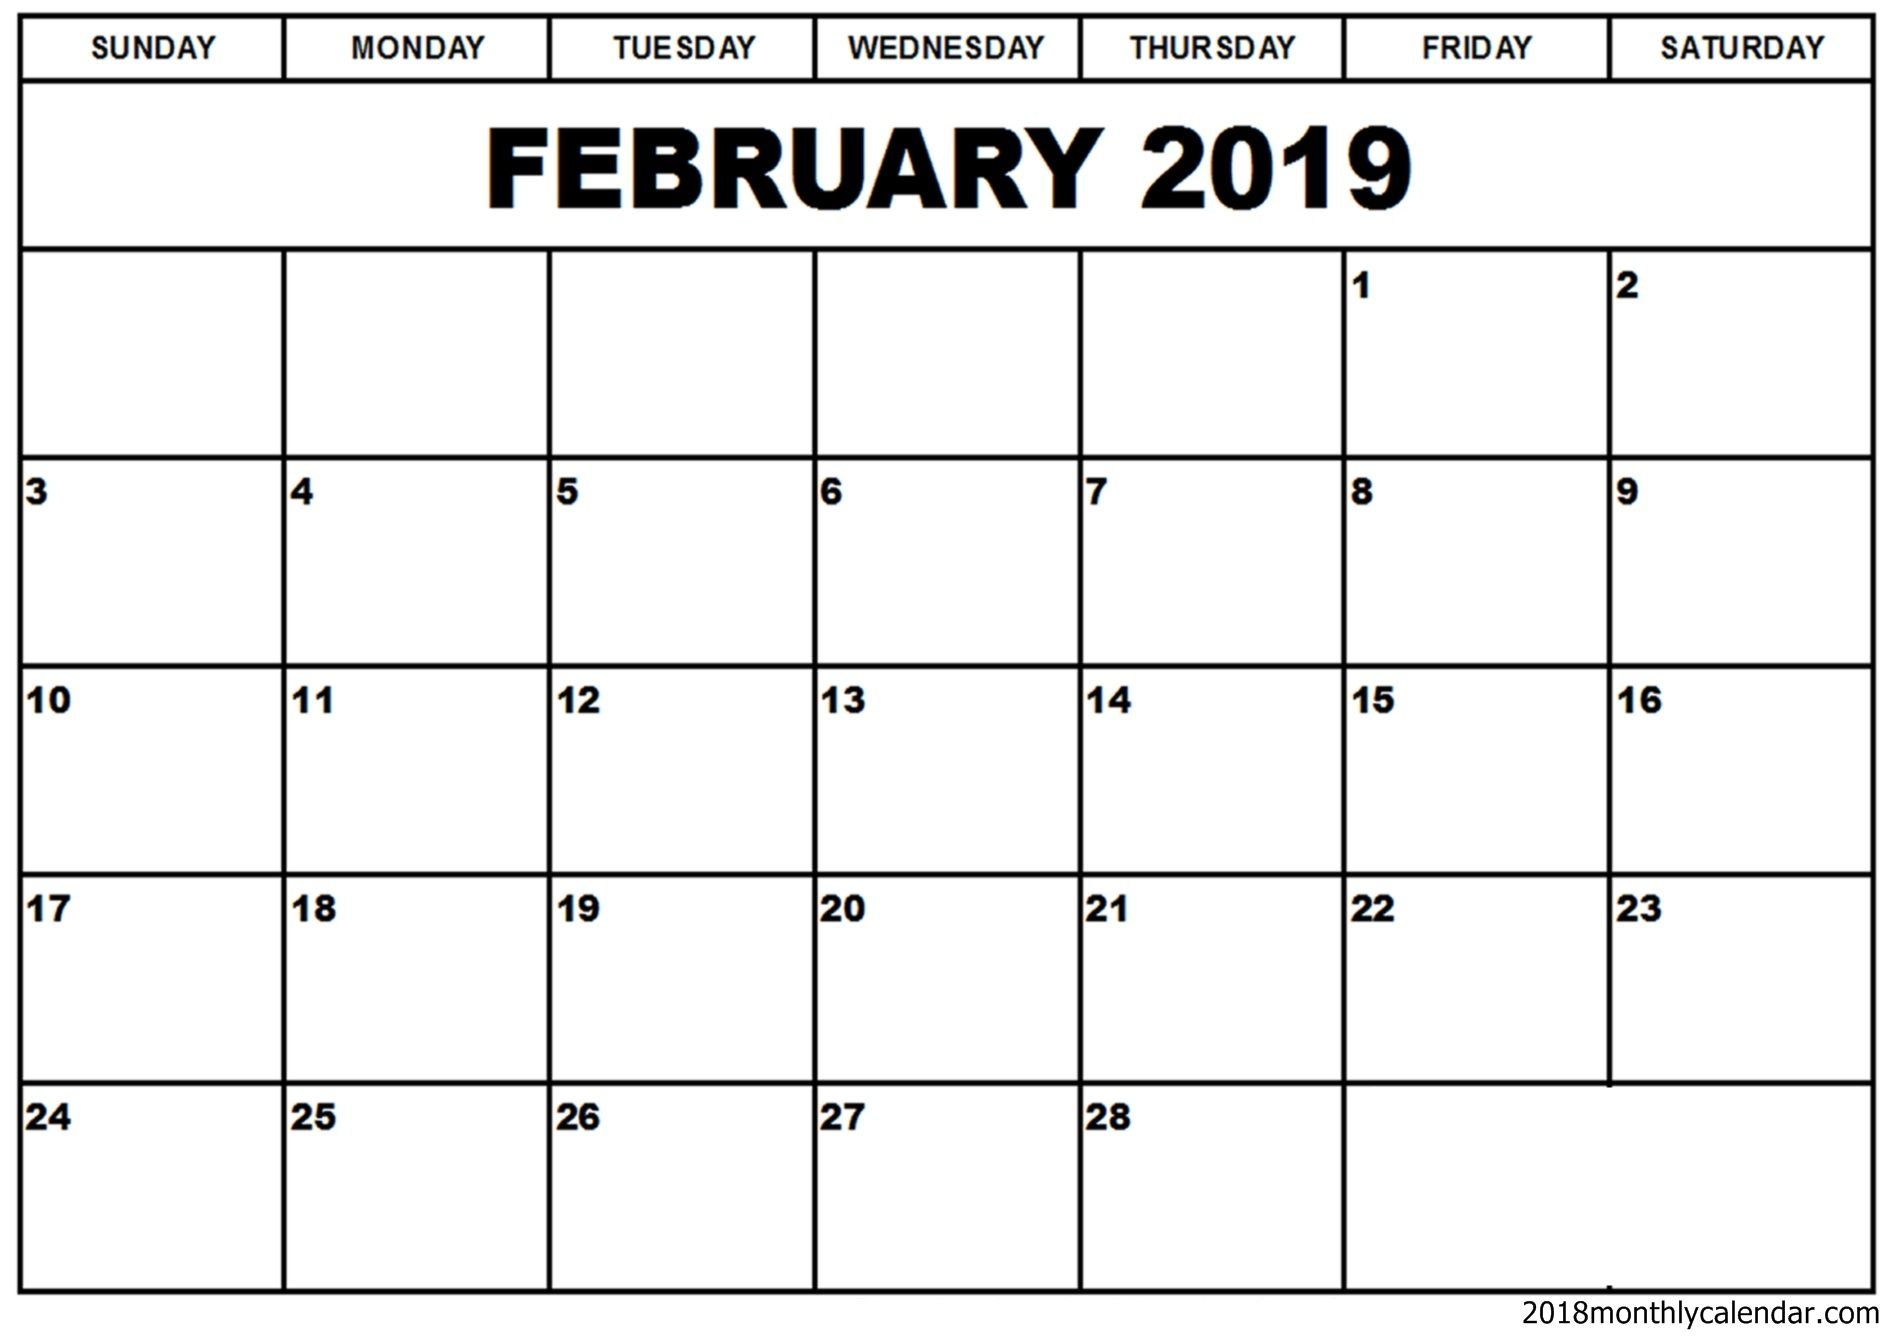 Monthly Calendar 2019 Word February 2019 Calendar Word Template | Free Printable Monthly